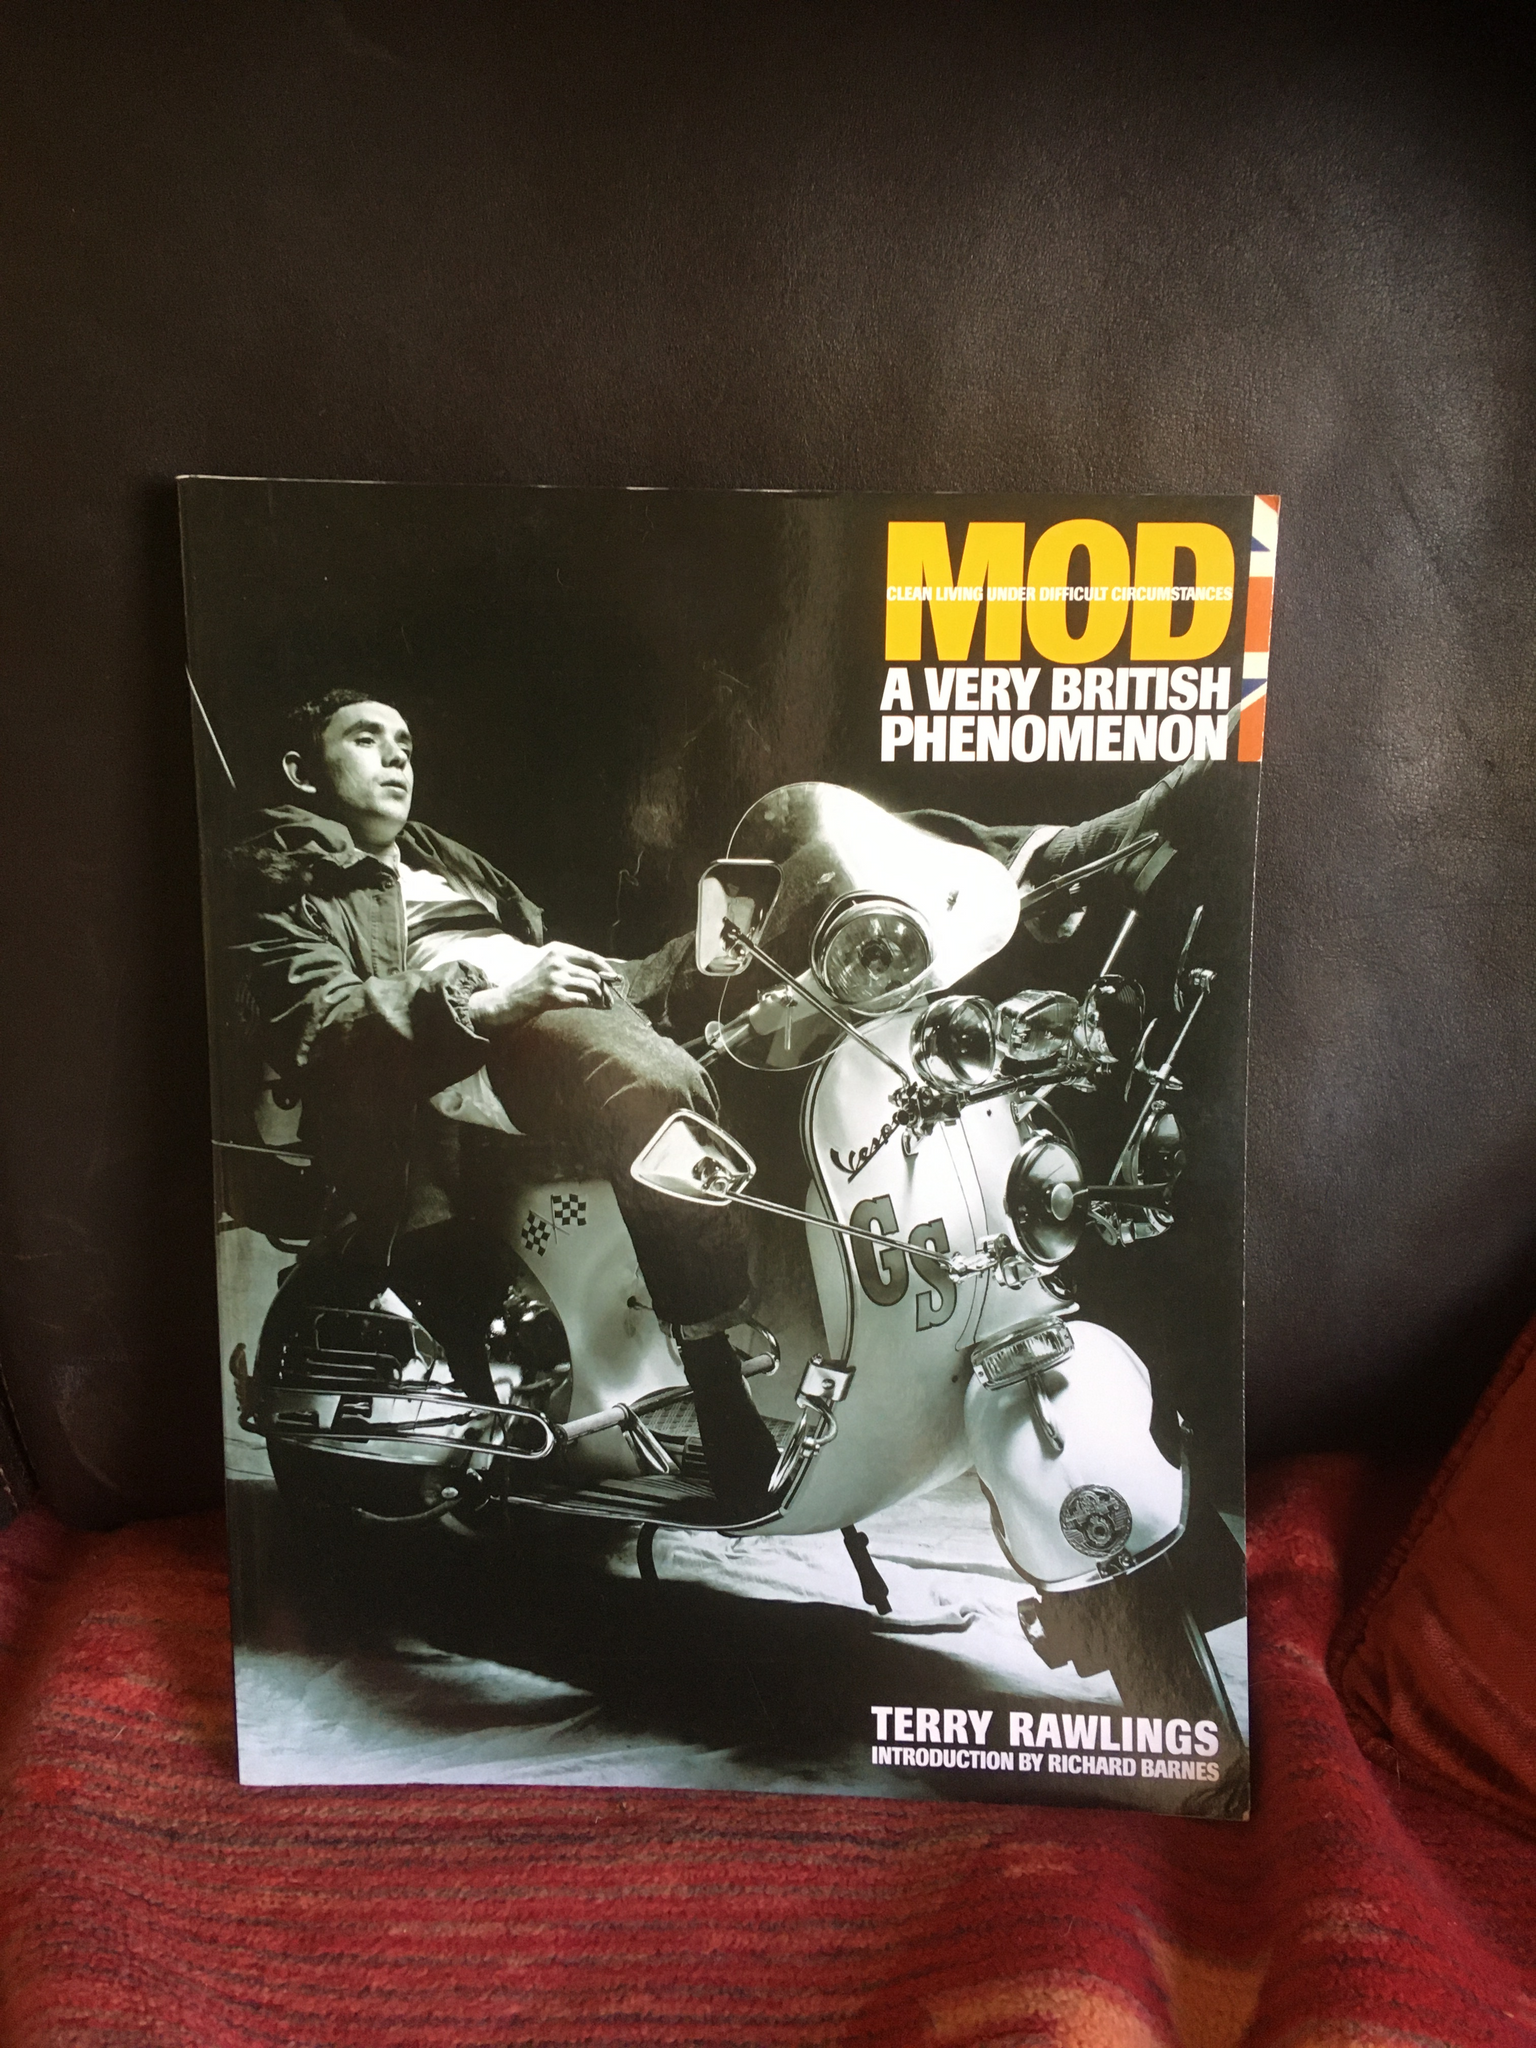 Mod: Clean Living Under Very Difficult Circumstances - A Very British Phenomenonby Terry Rawlings